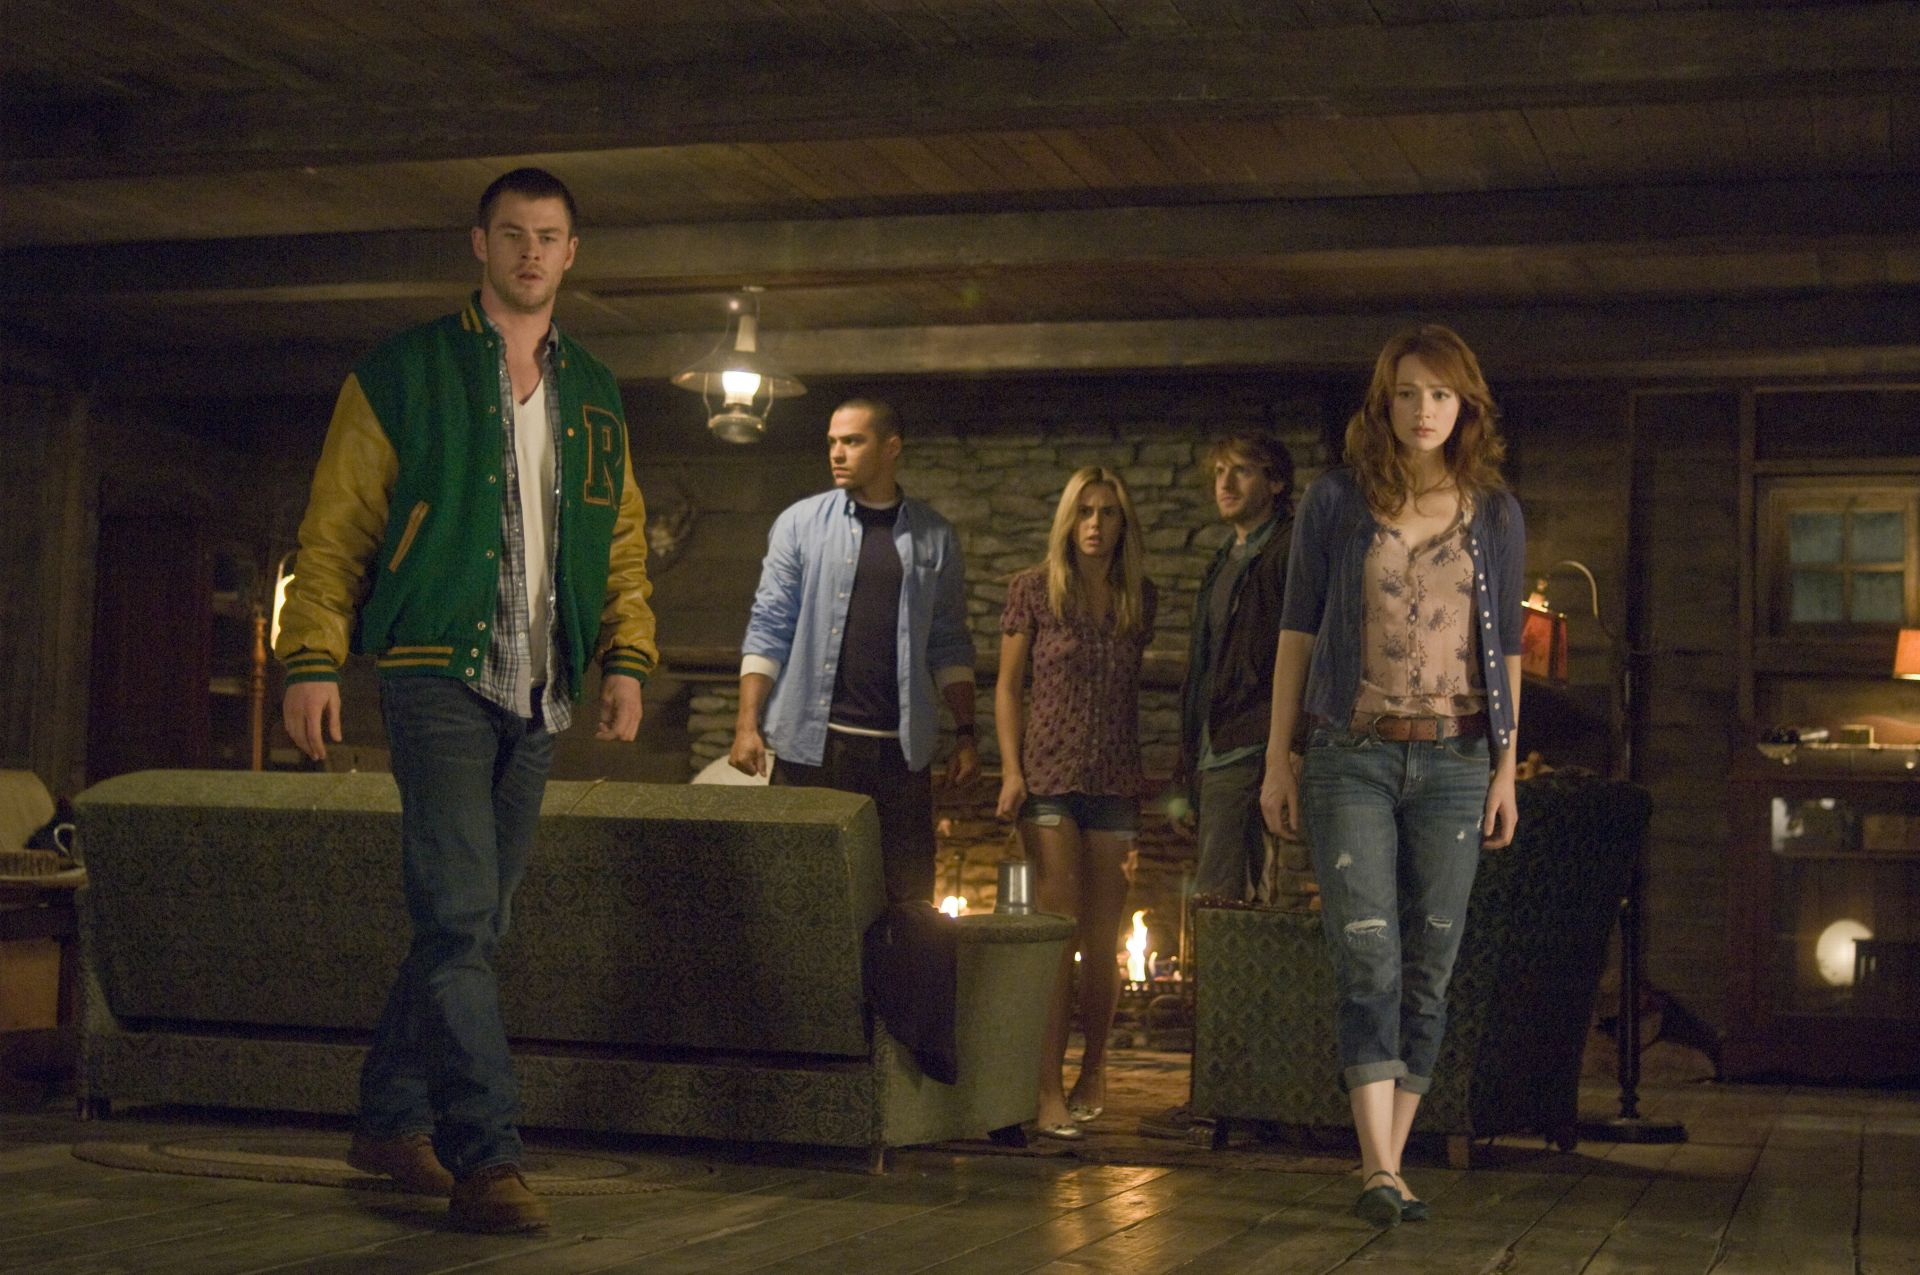 Chris Hemsworth, Jesse Williams, Anna Hutchison, Fran Kranz and Kristen Connolly in The Cabin in the Woods (2012)